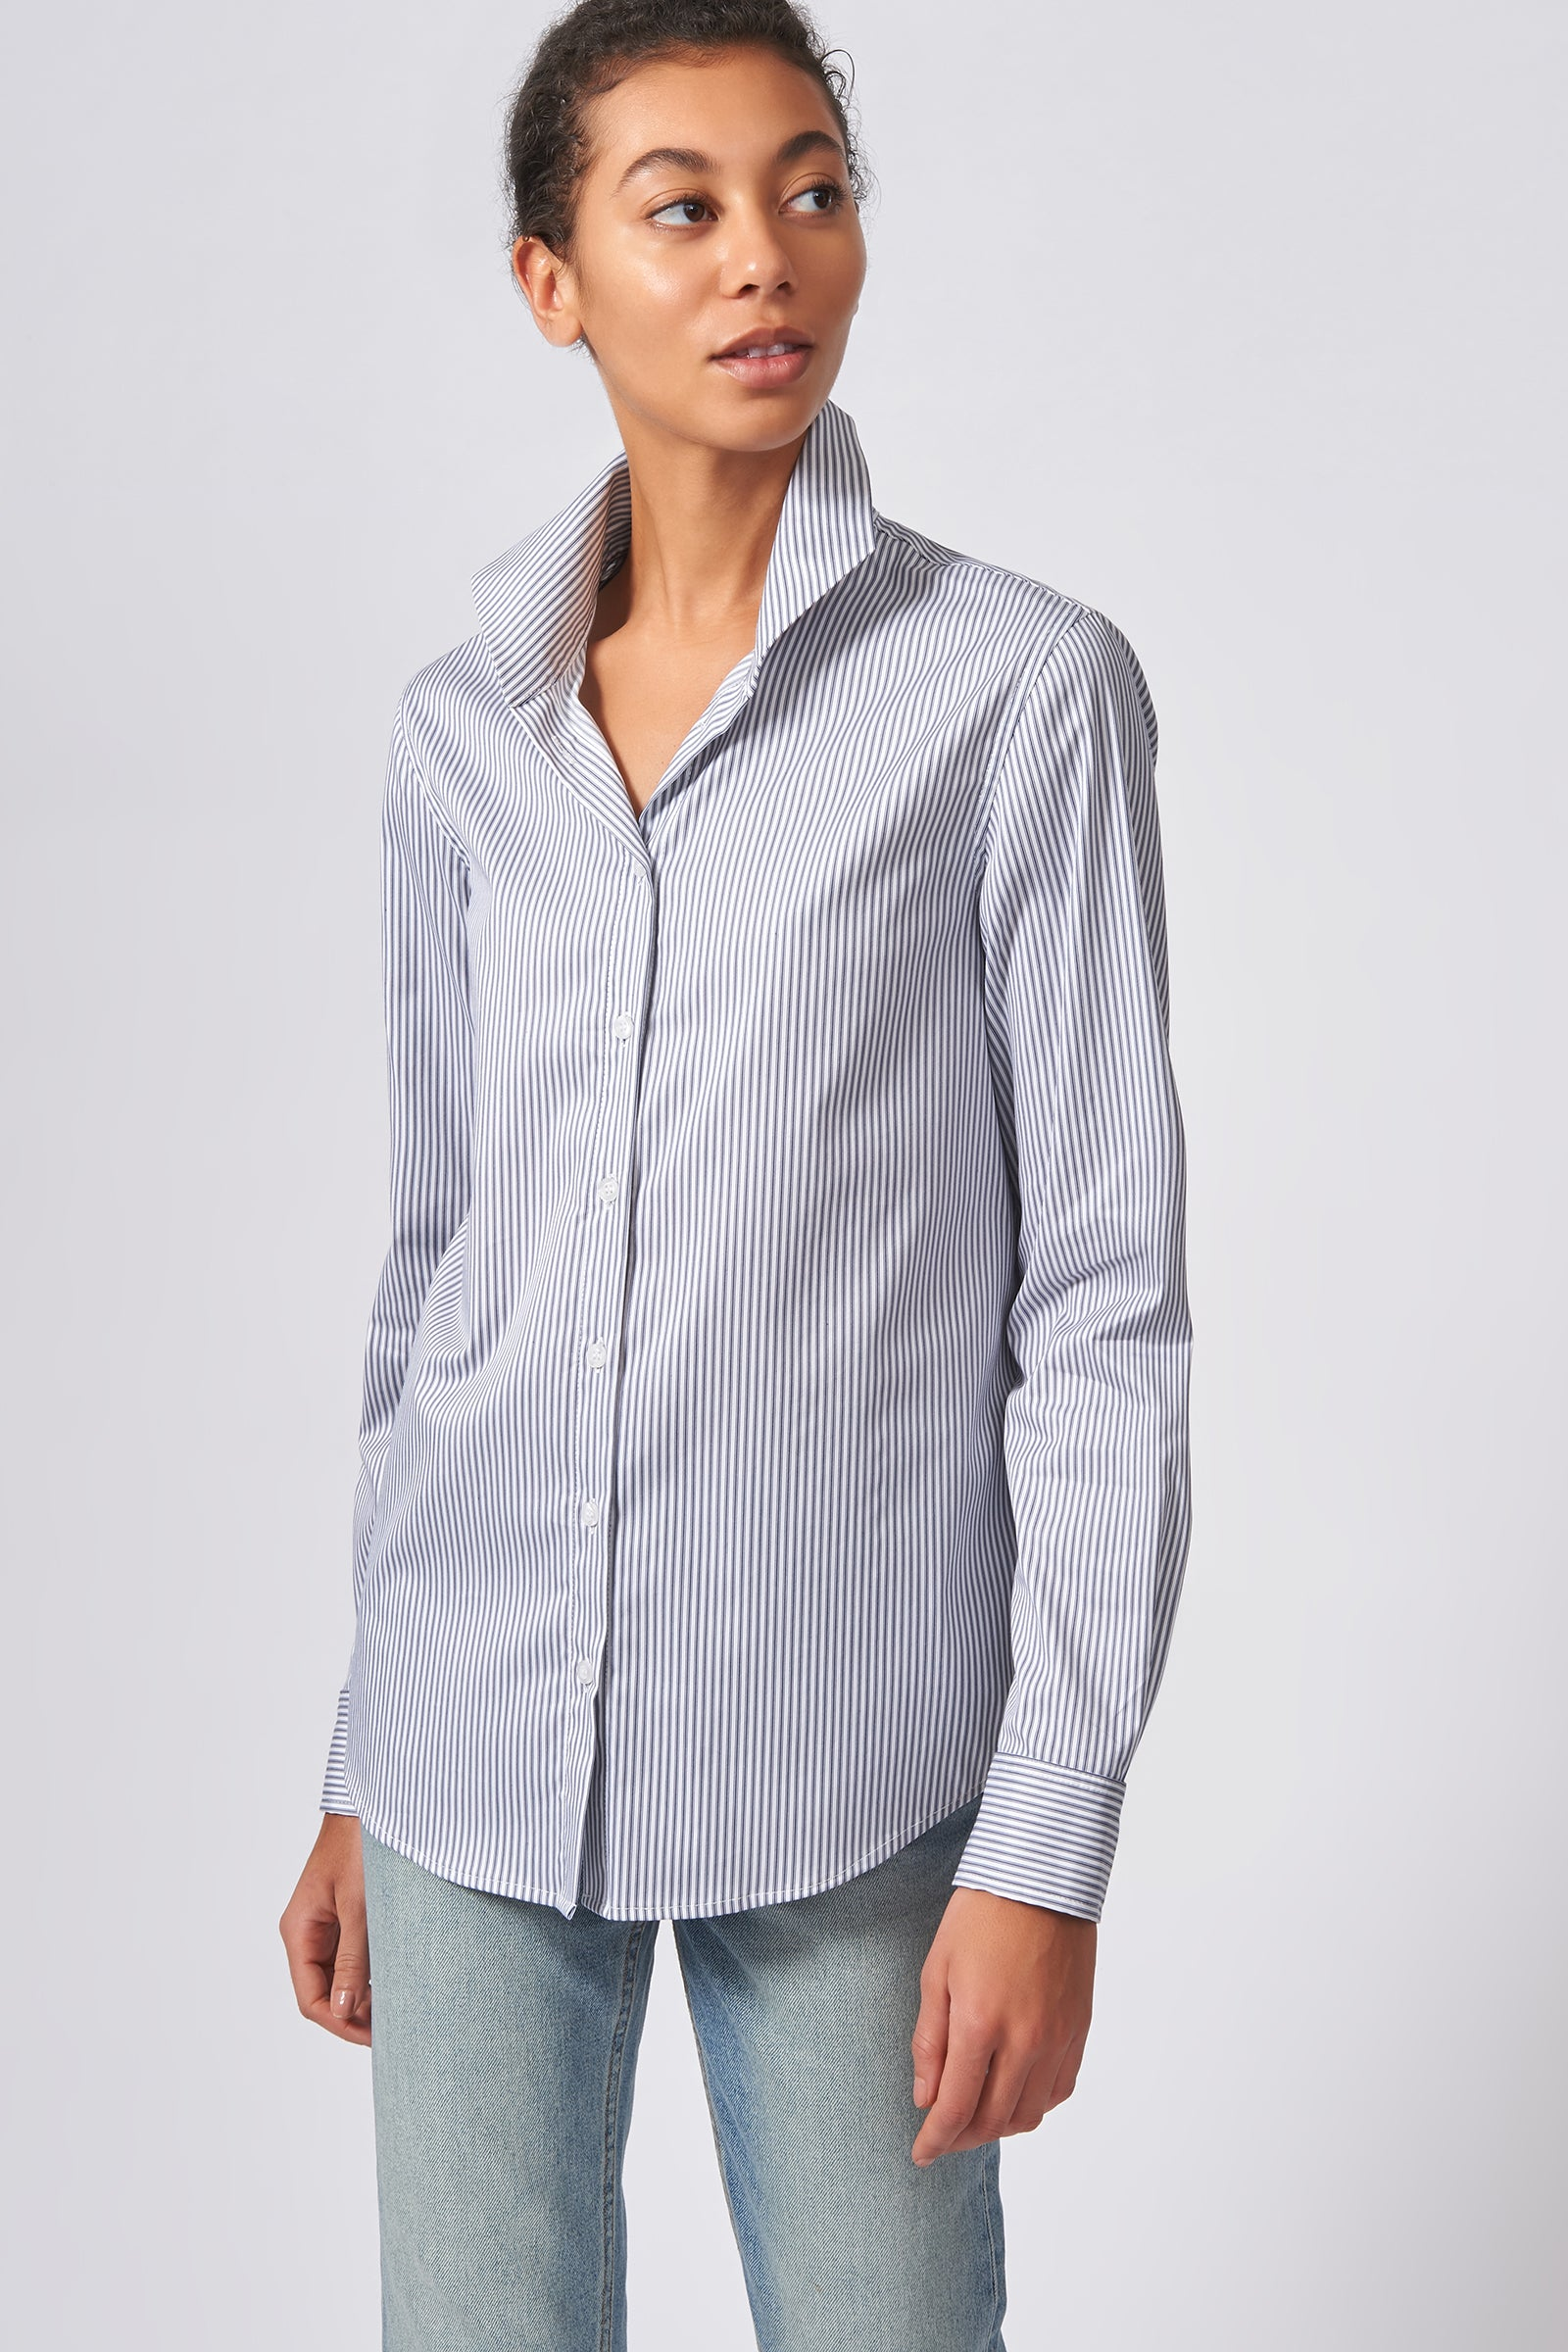 Kal Rieman Ginna Box Pleat Tailored Shirt in Navy Stripe Stretch on Model Front View